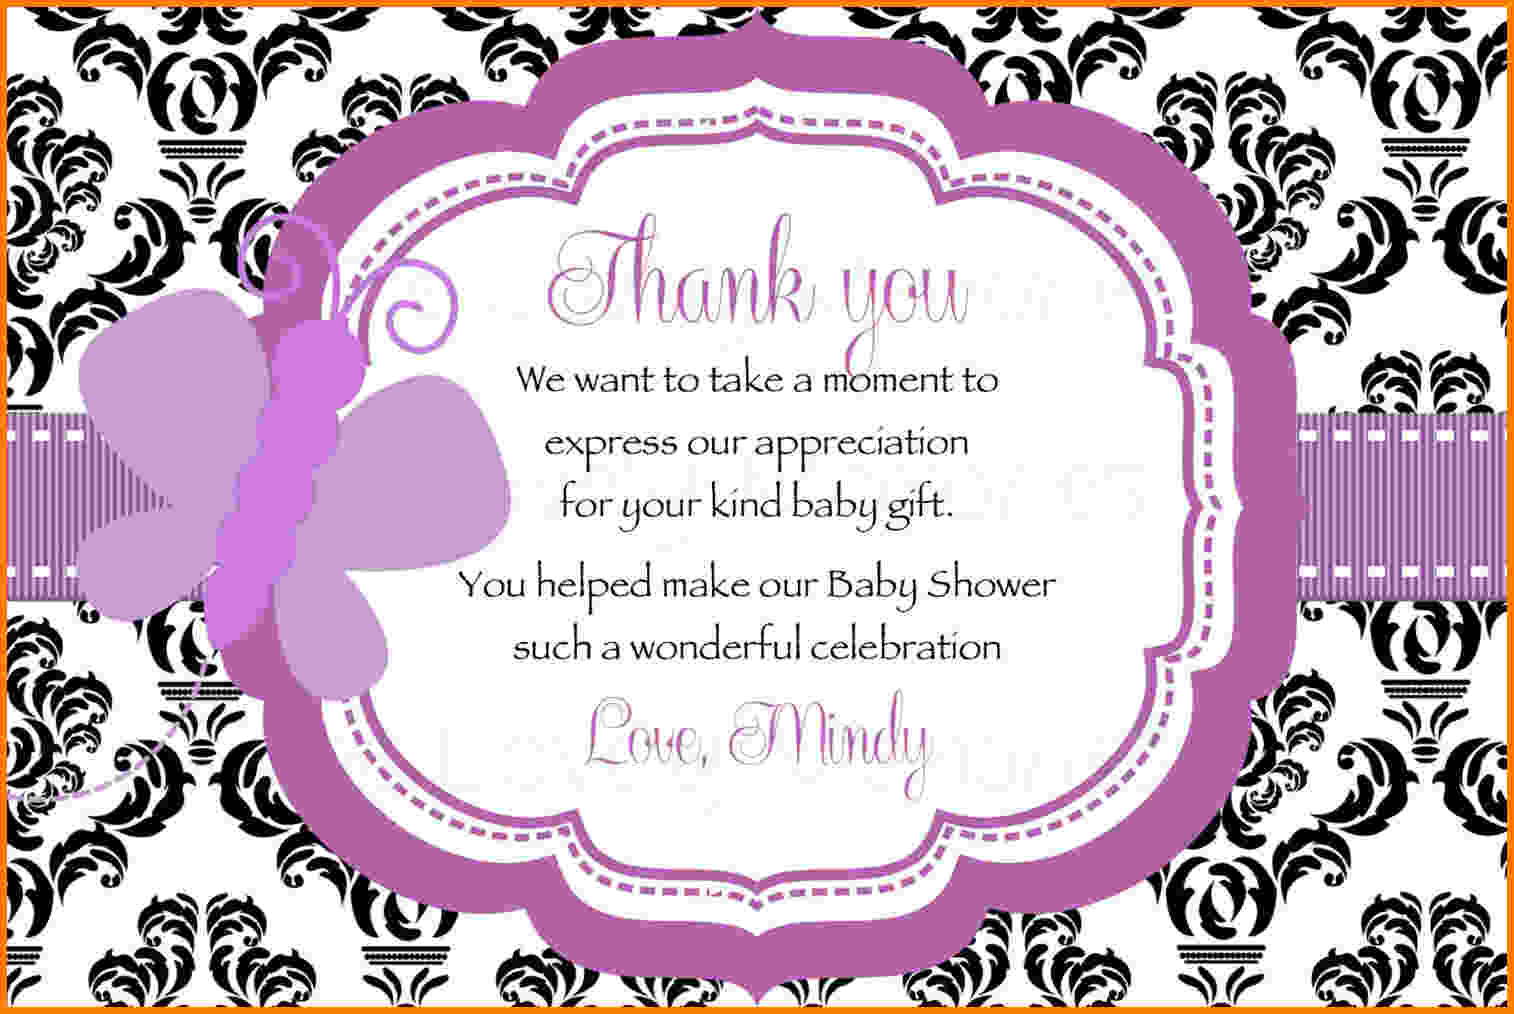 Full Size of Baby Shower:72+ Rousing Baby Shower Thank You Cards Picture Ideas Baby Shower Thank You Cards Baby Shower Ideas A Baby Shower Baby Shower Food Boy Baby Shower Game Prizes Free Baby Shower Games Friendship Baby Shower Thank You Cards Anchor With Baby Shower